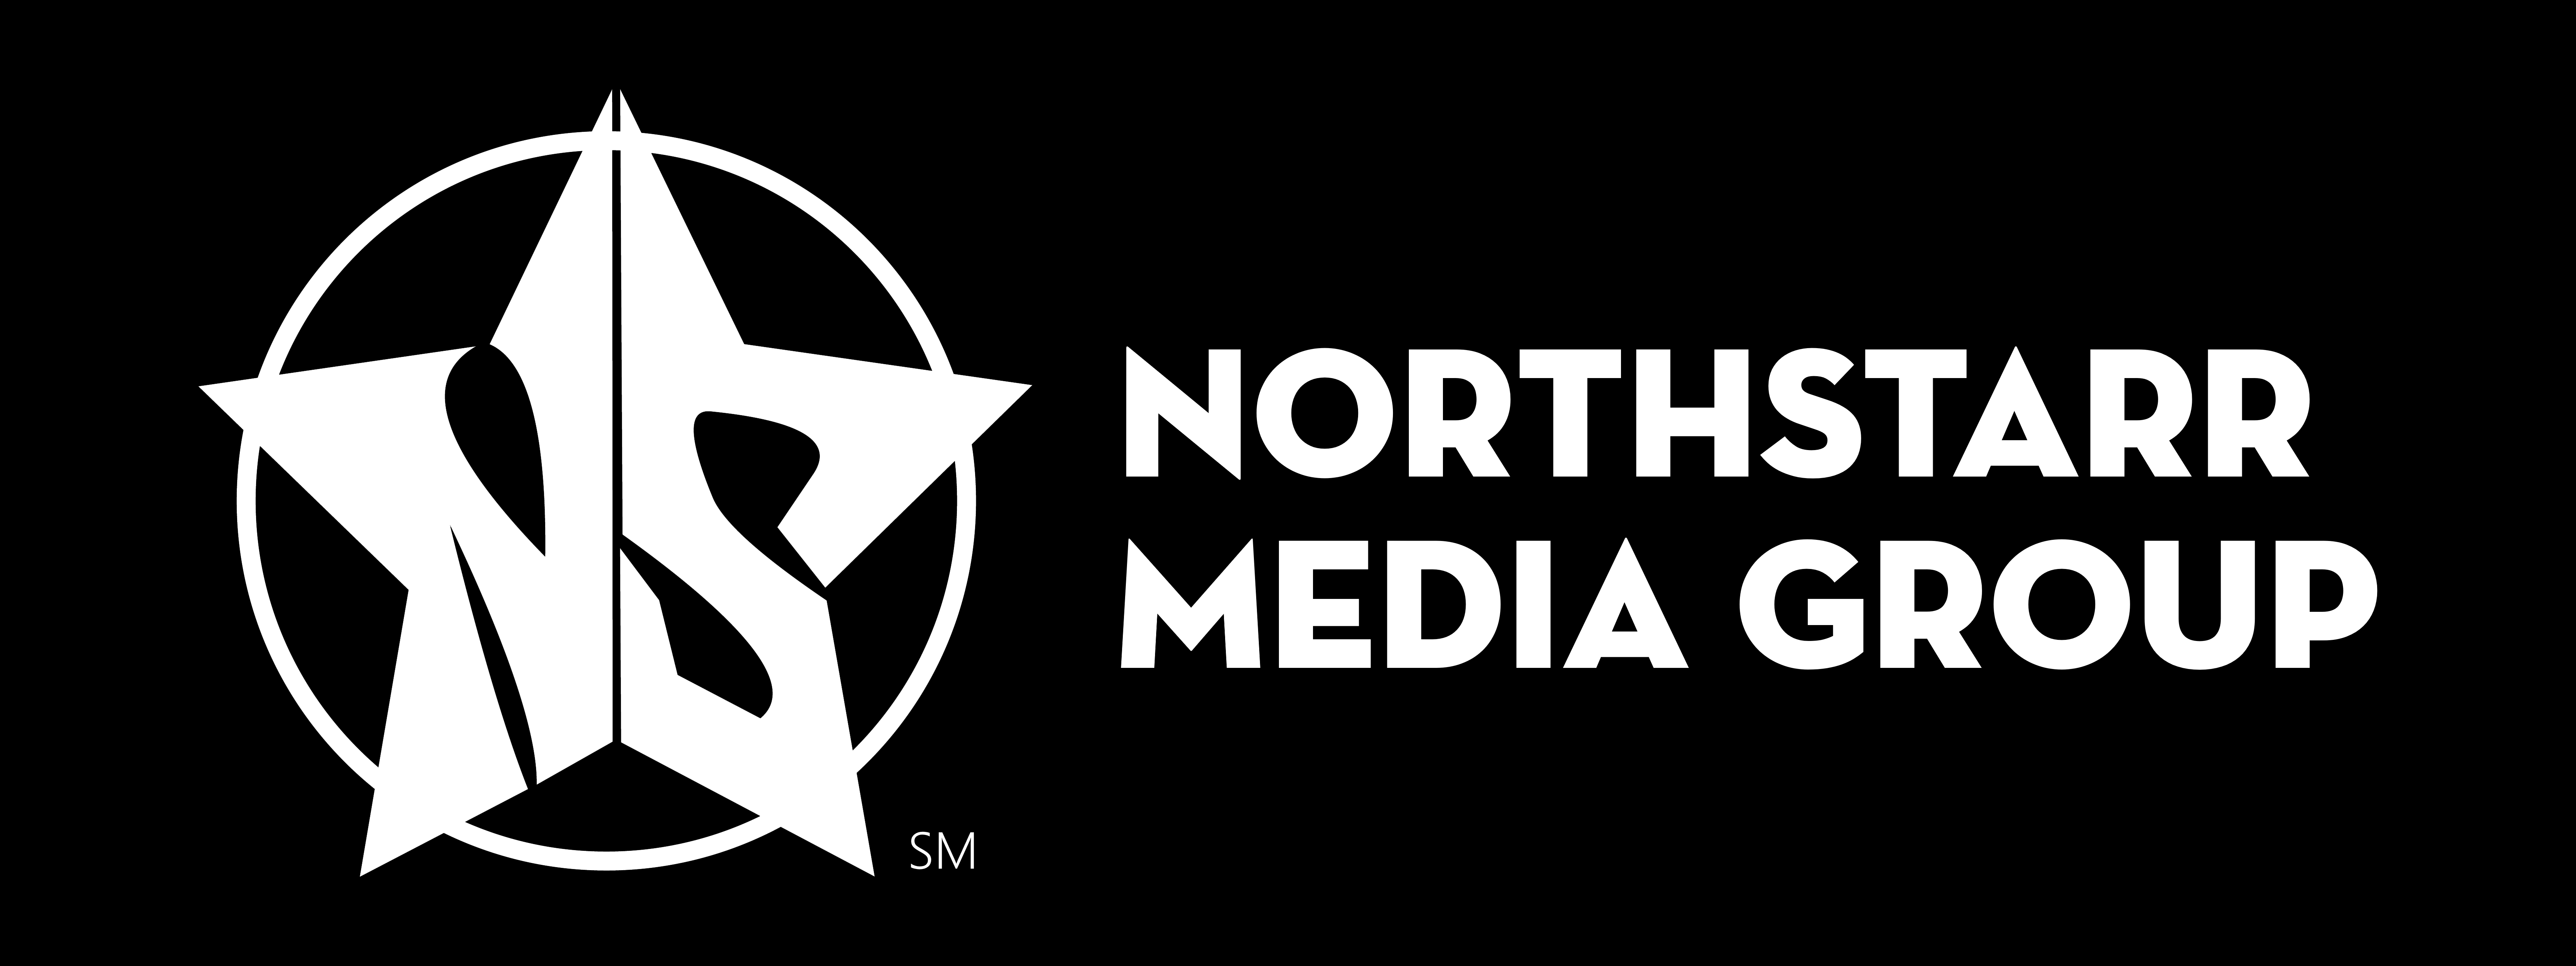 NORTHSTARR MEDIA GROUP